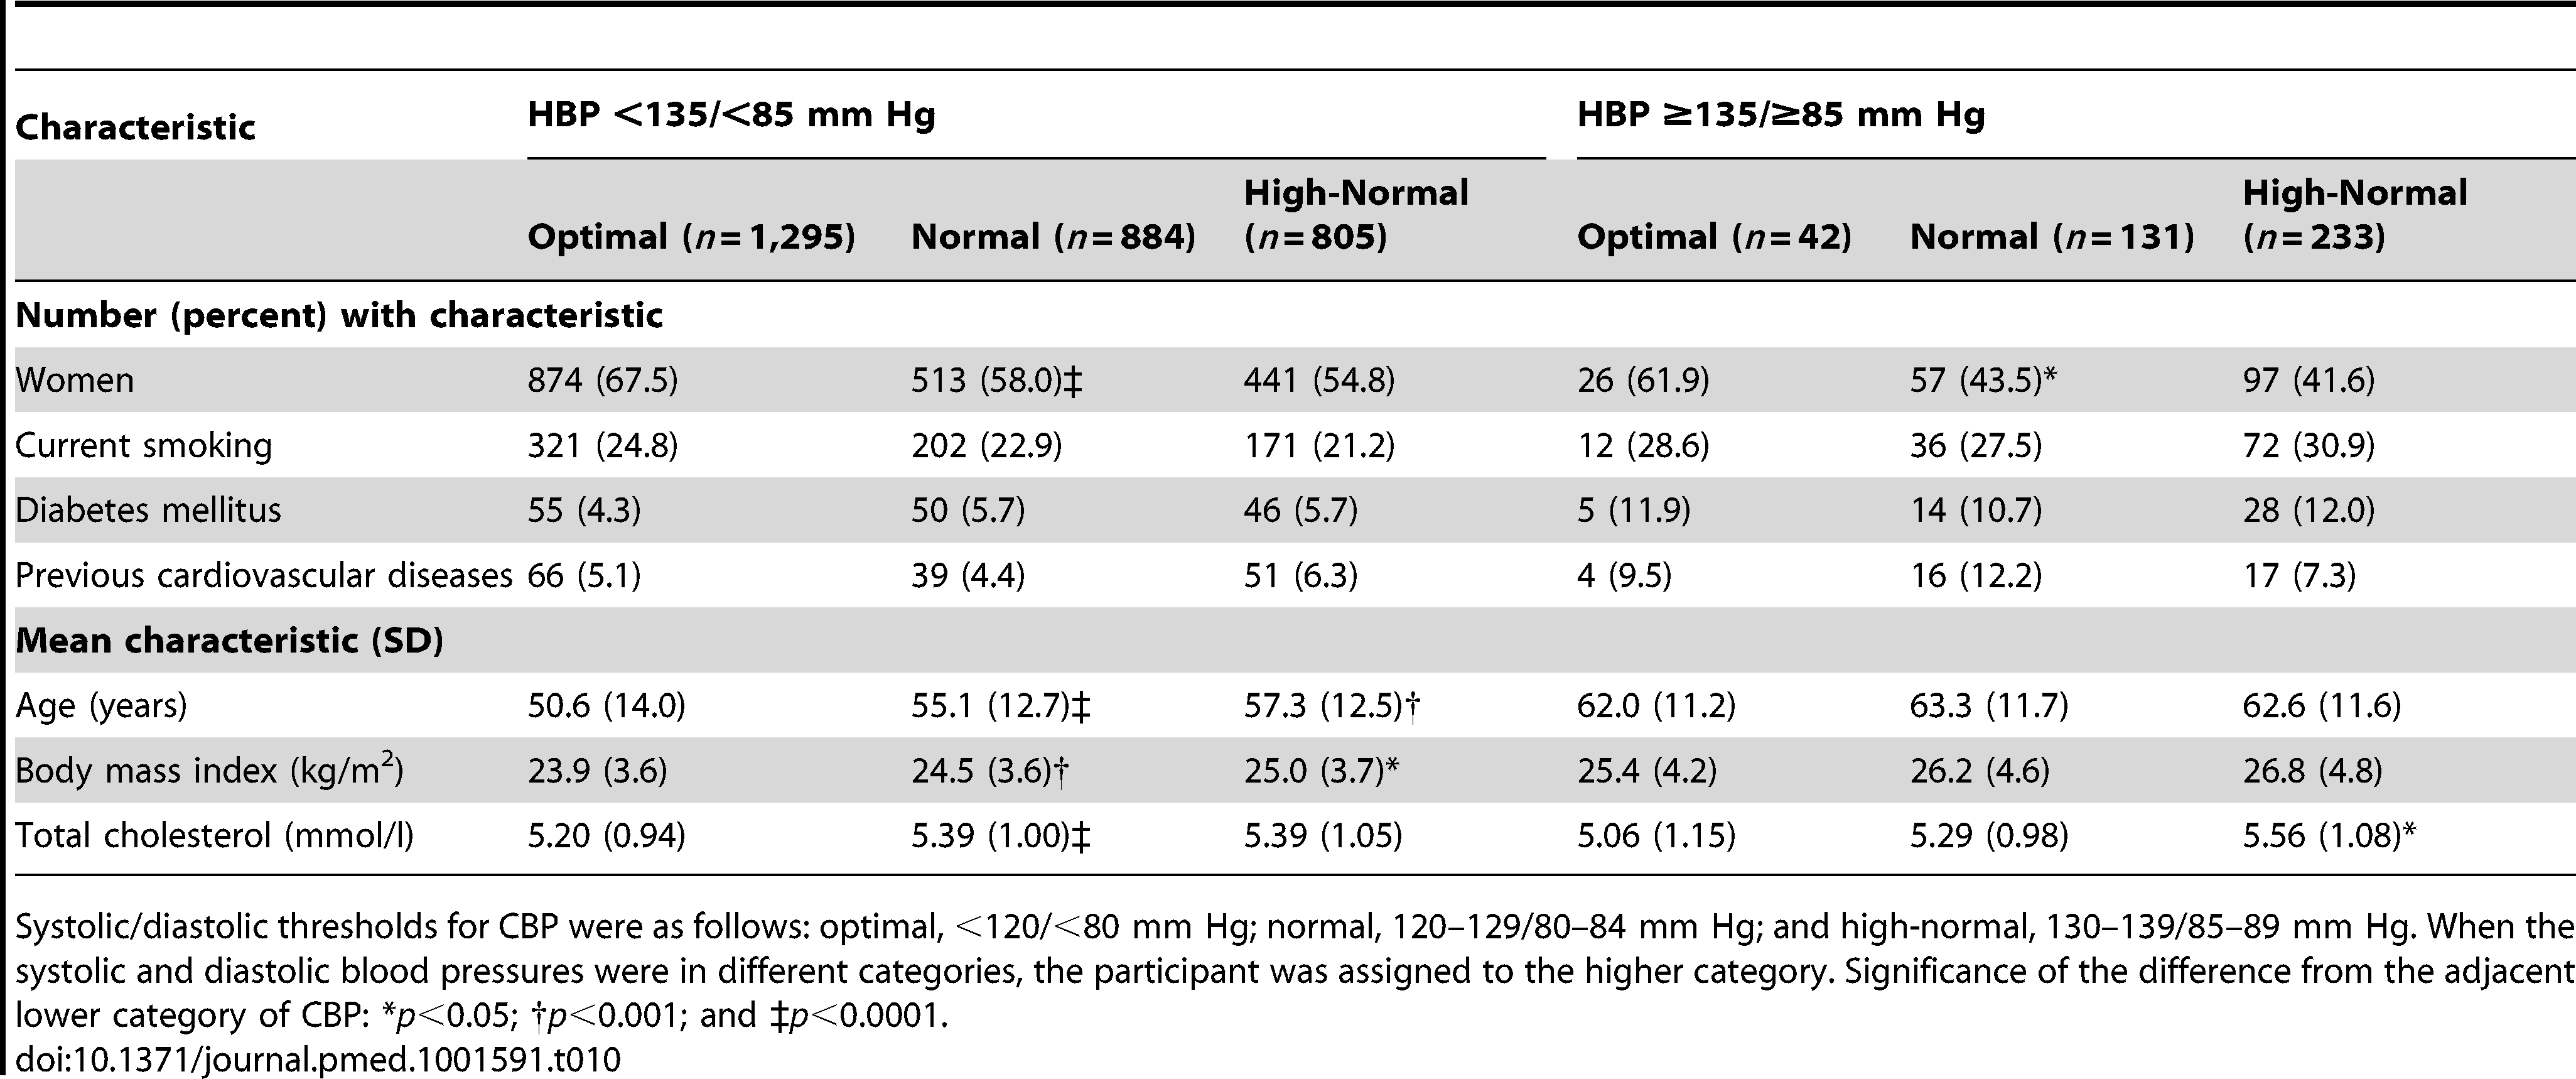 Characteristics of participants with masked hypertension (home blood pressure ≥135/≥85 mm Hg) compared with participants with true optimal, normal, or high-normal blood pressure (home blood pressure <135/<85 mm Hg).